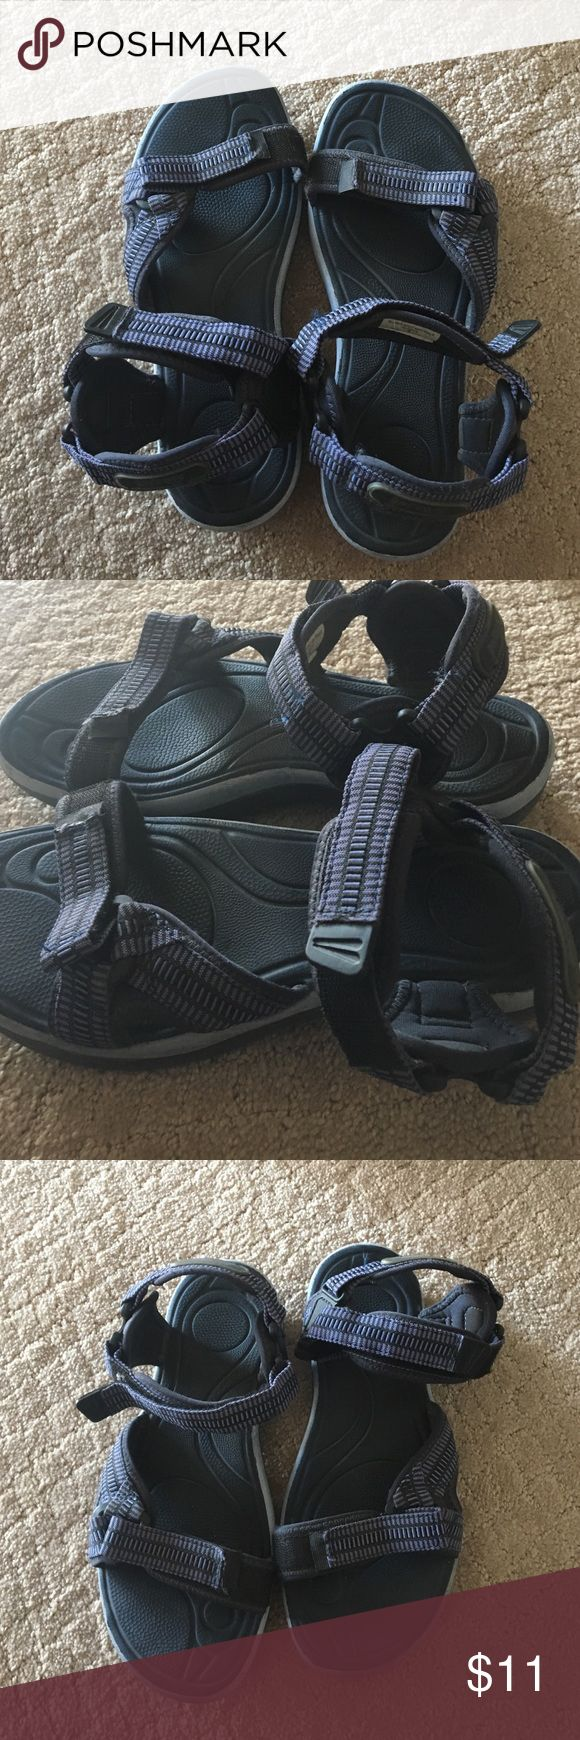 Women's Rafters Sandals Size 9 These blue Rafters sandals are a women's size 9. THE have rarely been worn an are in excellent condition. Rafters  Shoes Sandals